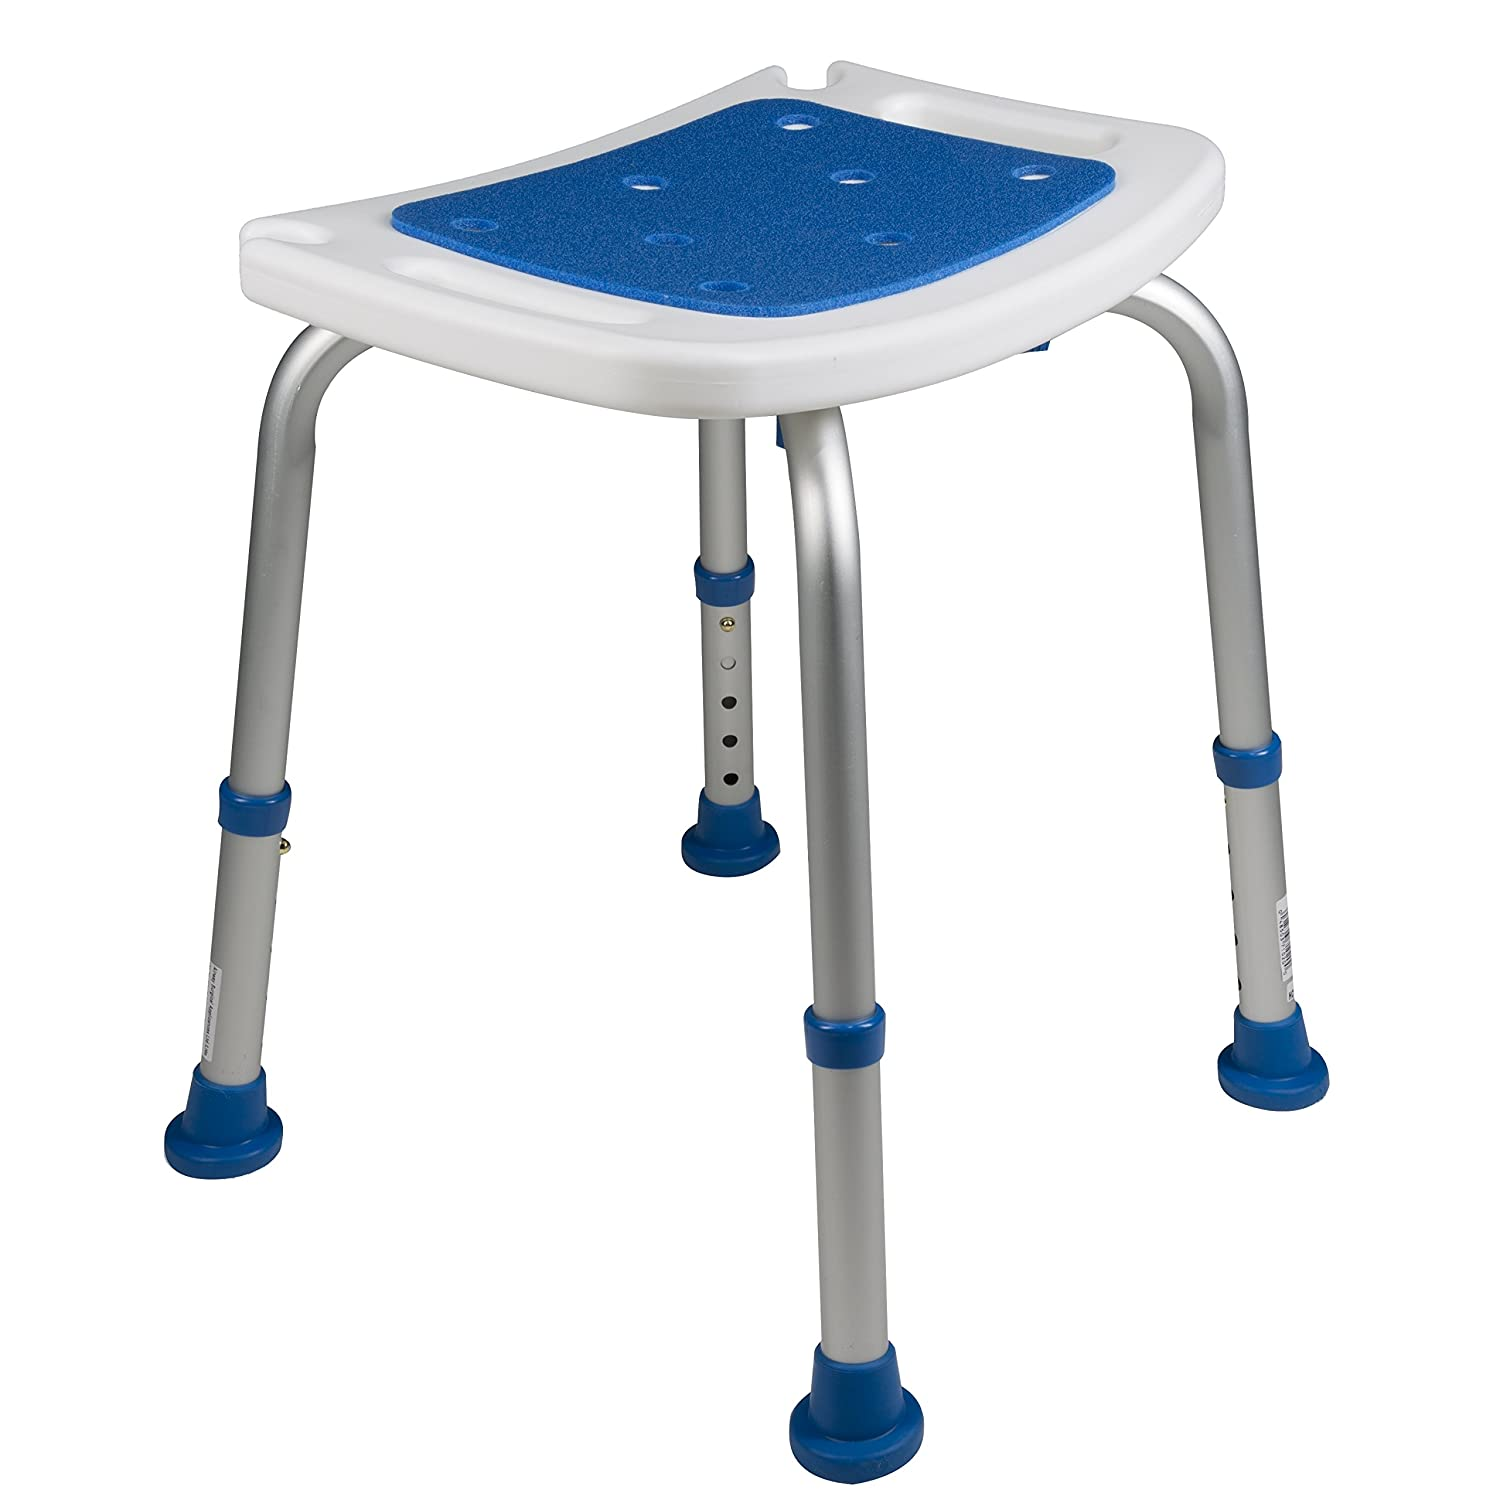 Phenomenal Pcp Bath Bench Shower Chair Safety Seat Adjustable Height Stability Grip Traction Medical Grade Senior Living Spa Aid Mobility Recovery Support Gamerscity Chair Design For Home Gamerscityorg